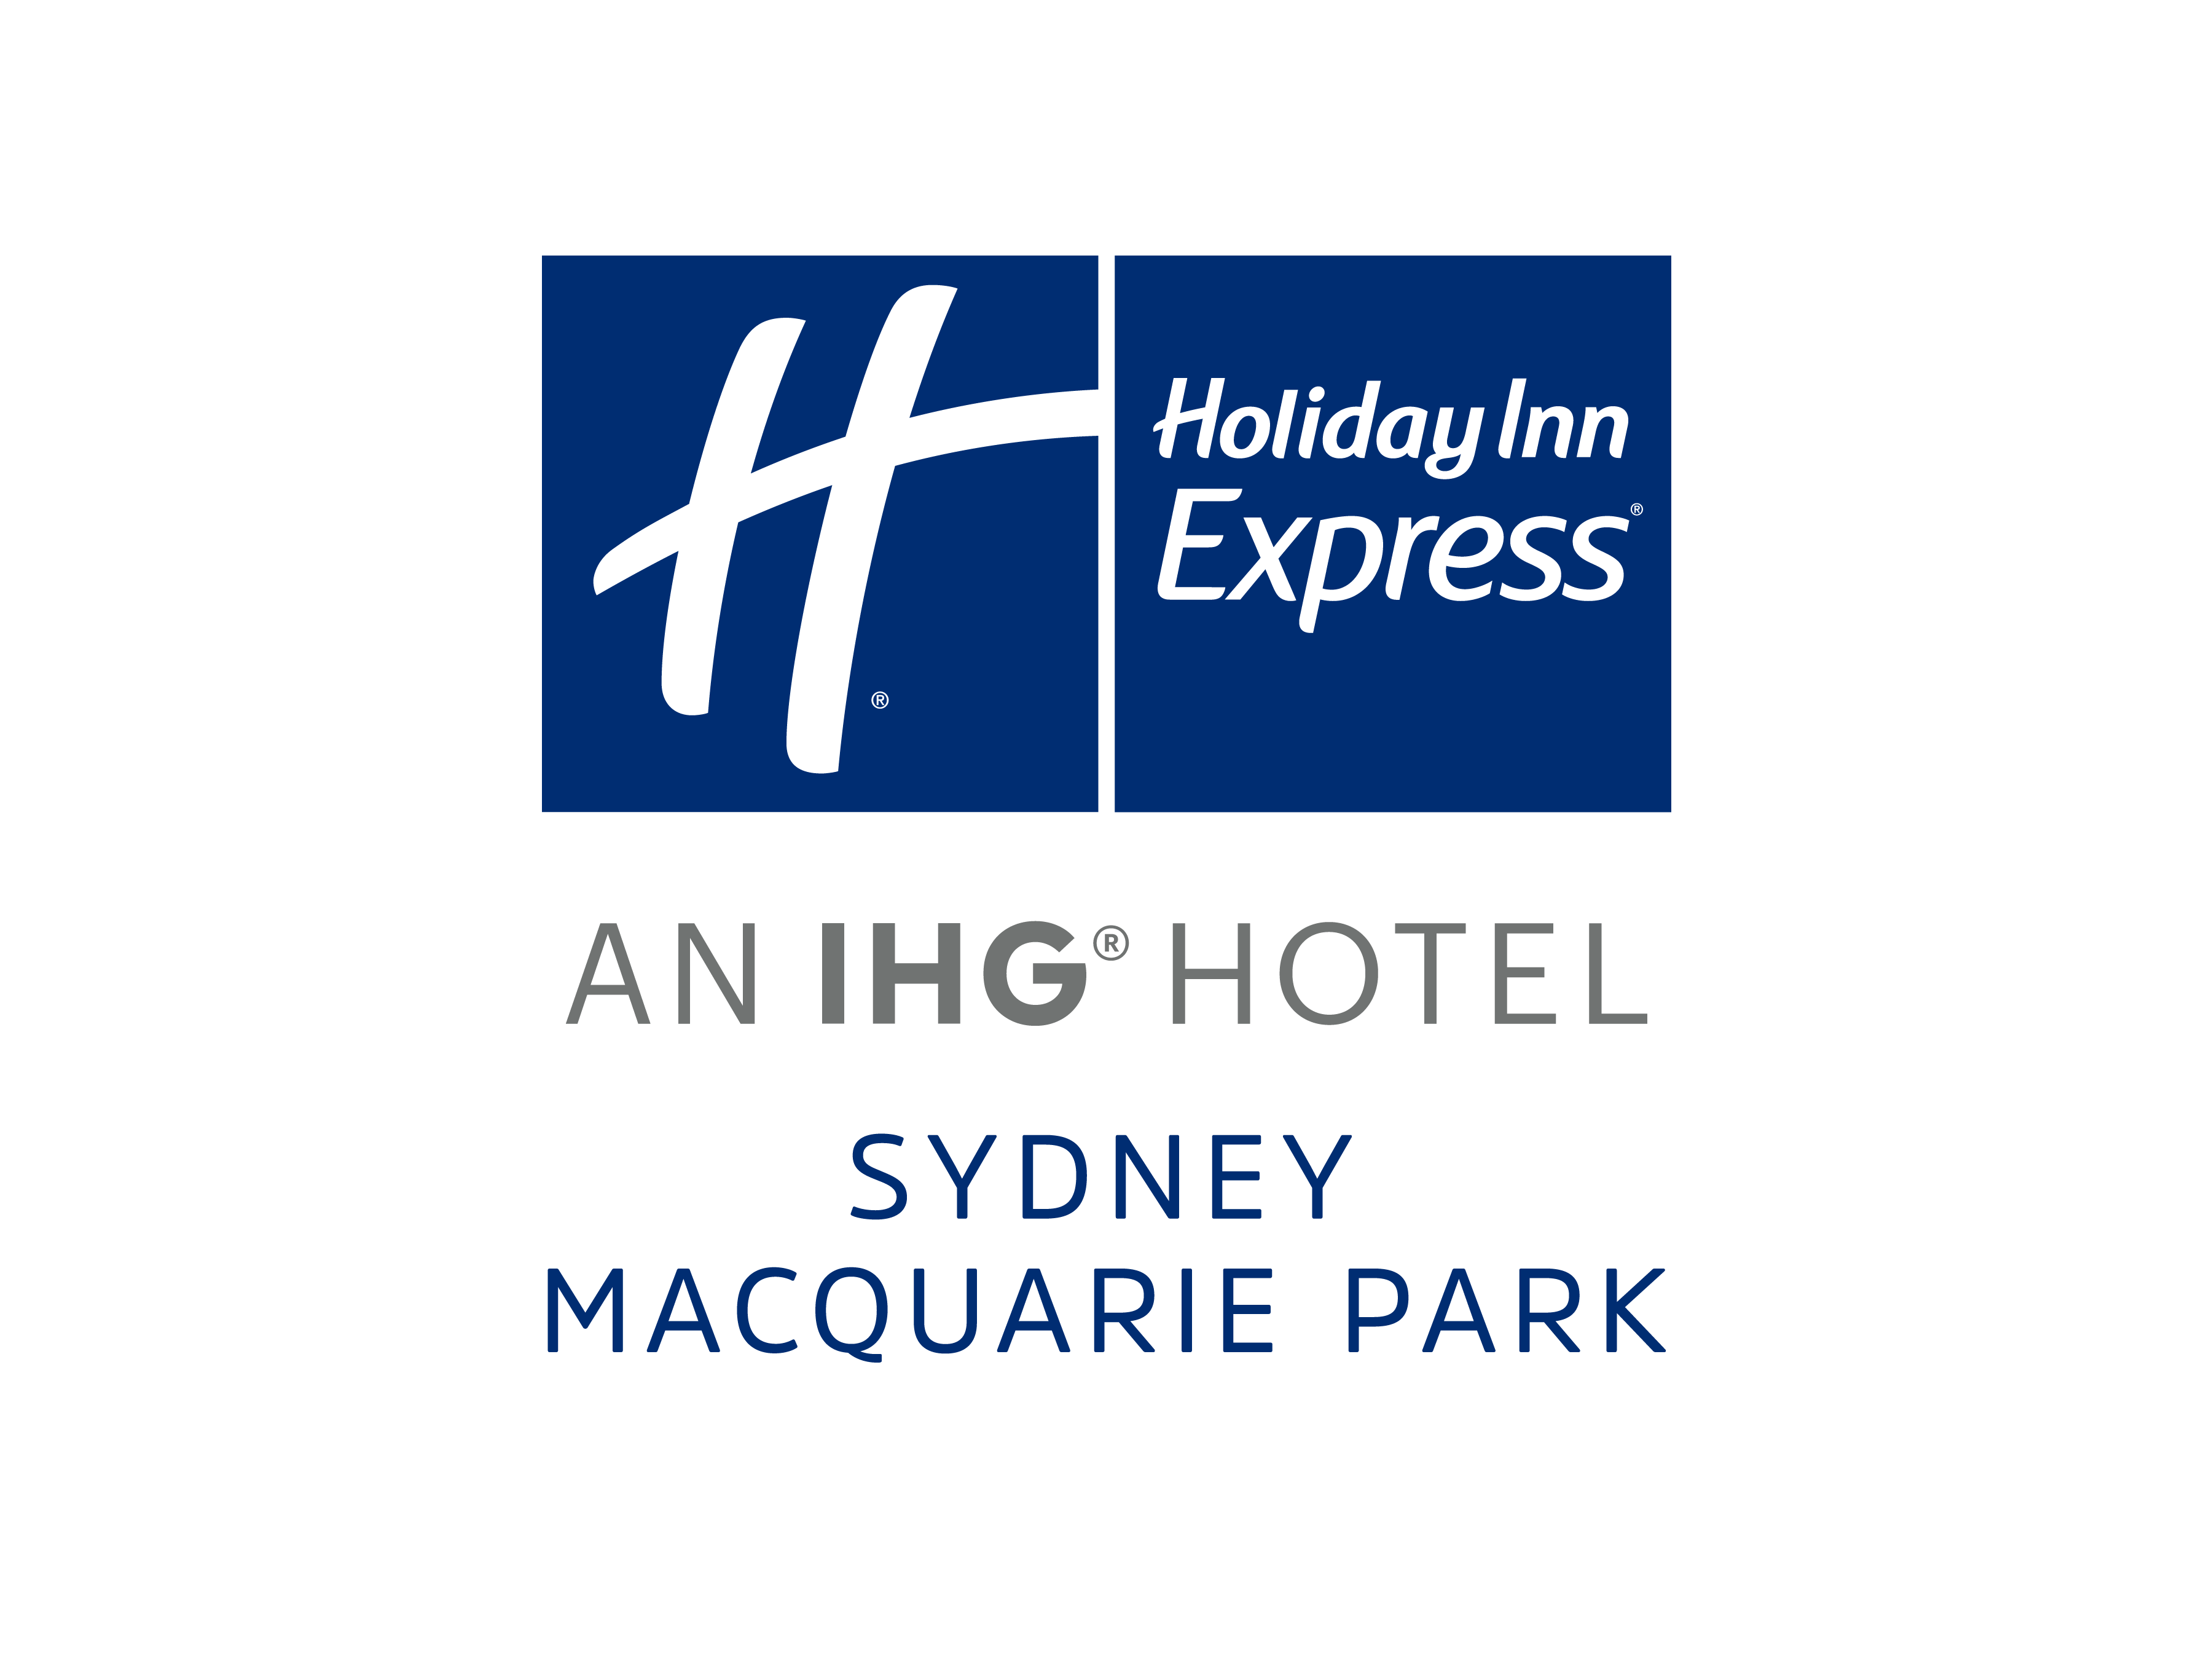 Holiday inn express logo png. Sydney macquarie park digital